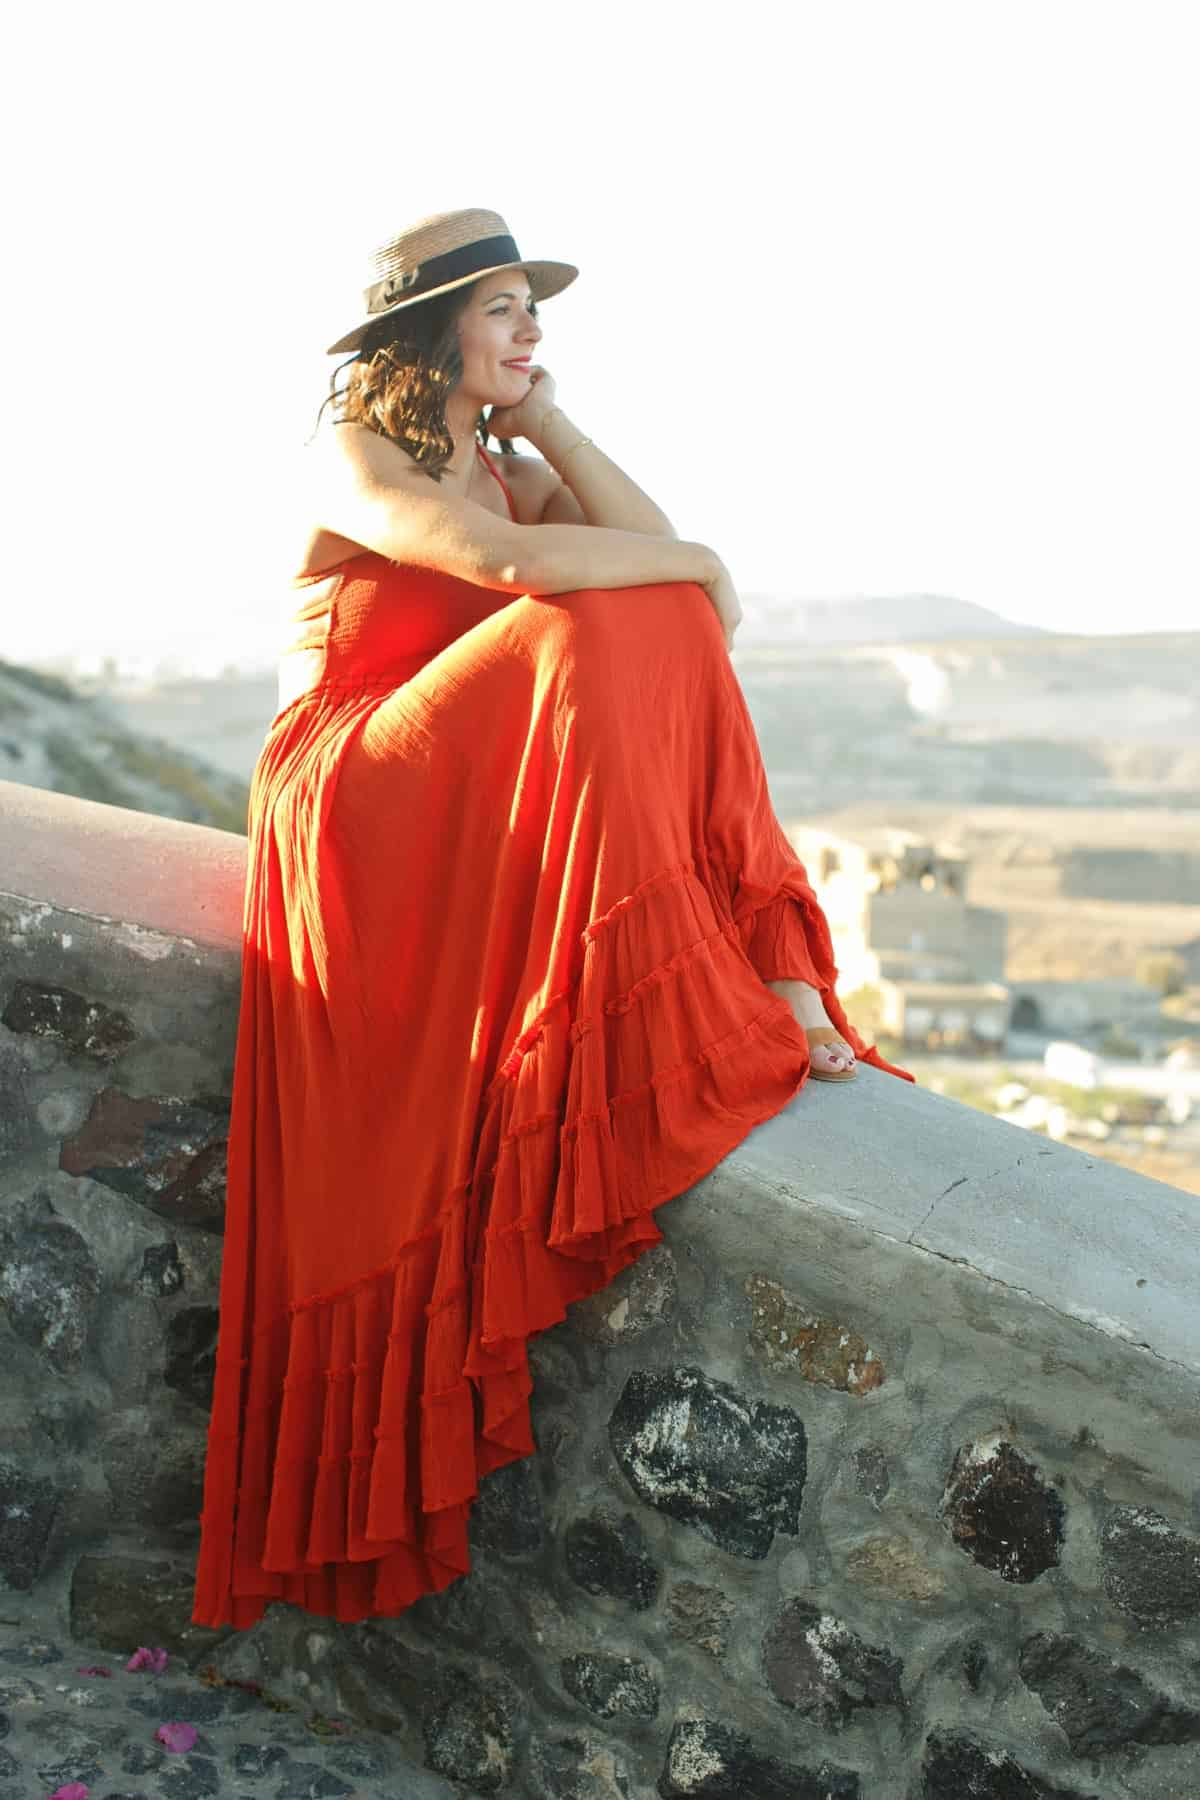 Free People red dress, maxi dresses, best outfit ideas for Greece - My Style Vita @mystylevita